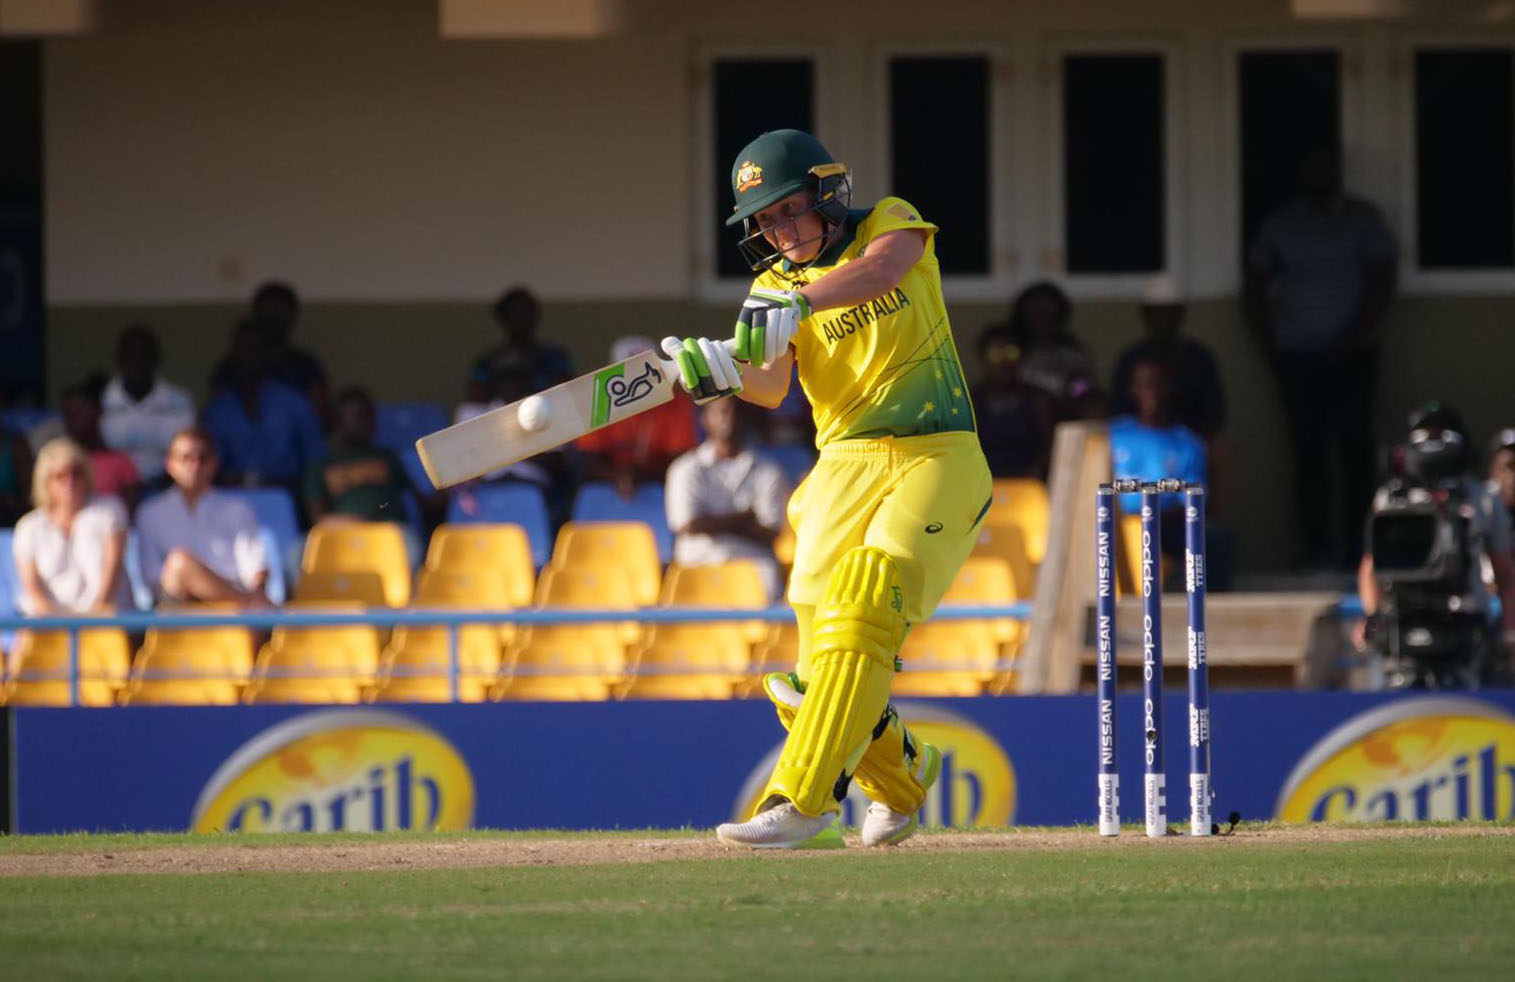 Healy hits out on her way to 46 // Cricket Network